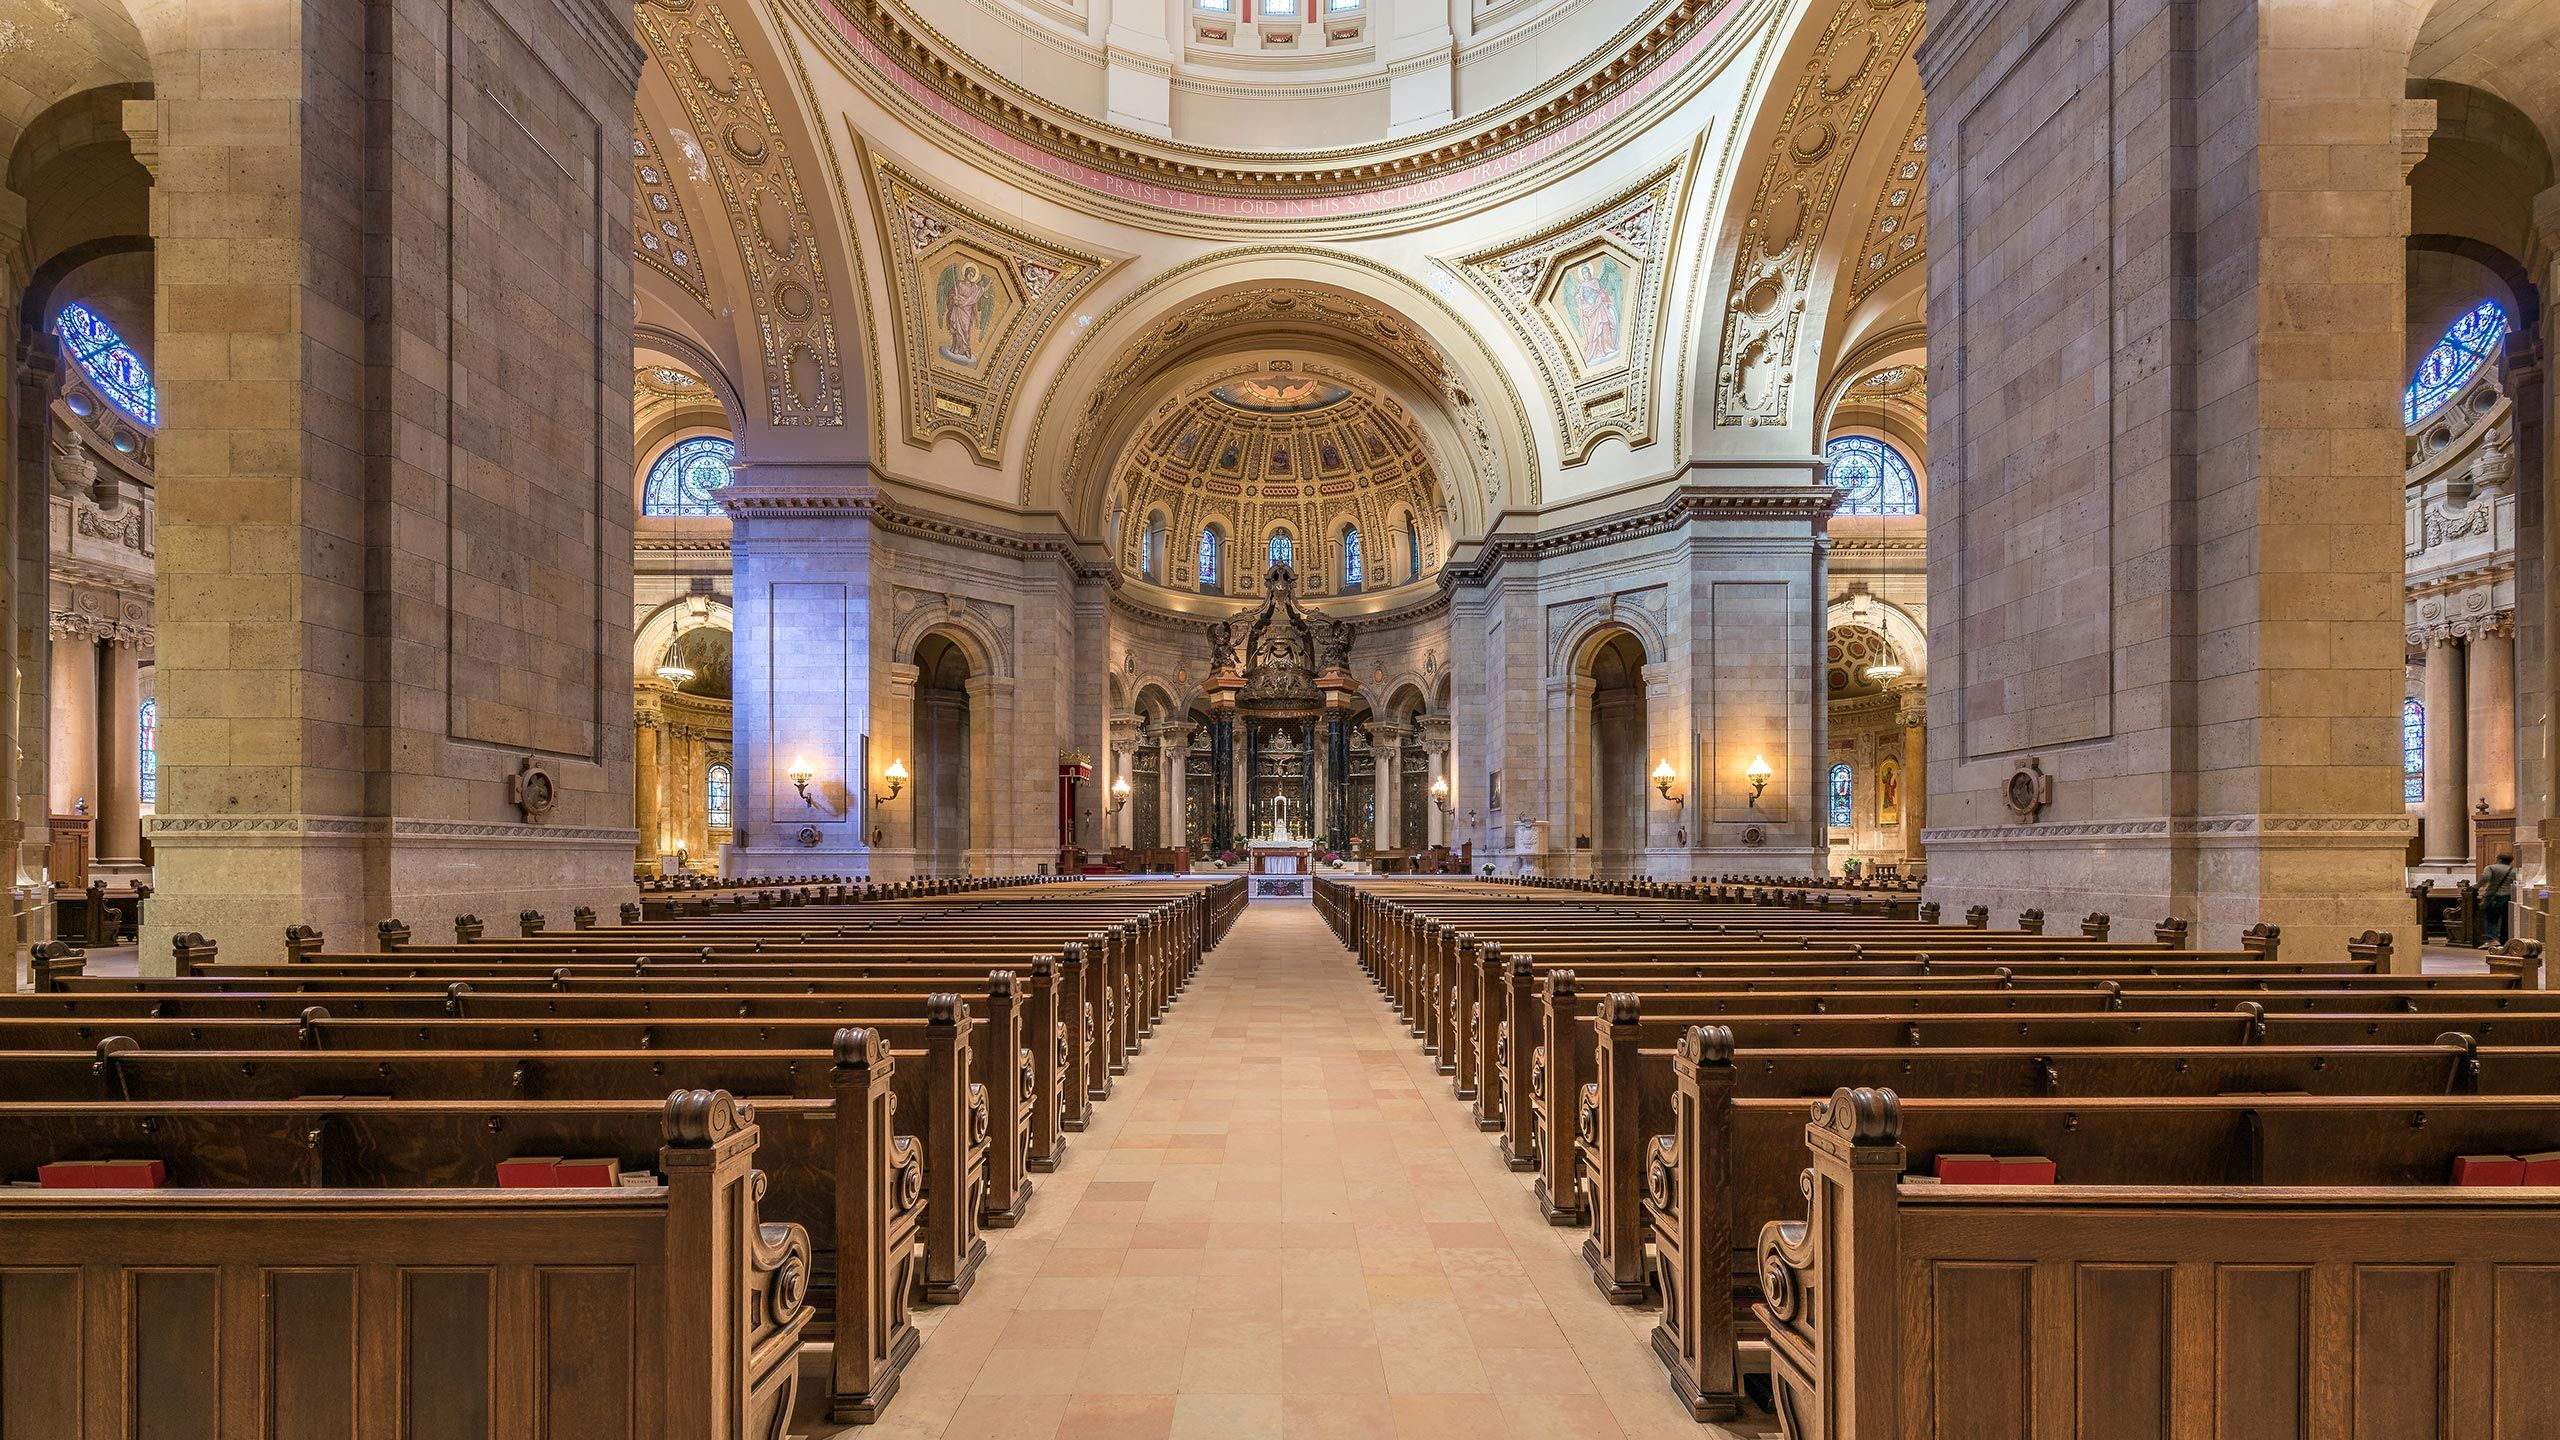 CATHEDRAL OF ST PAUL